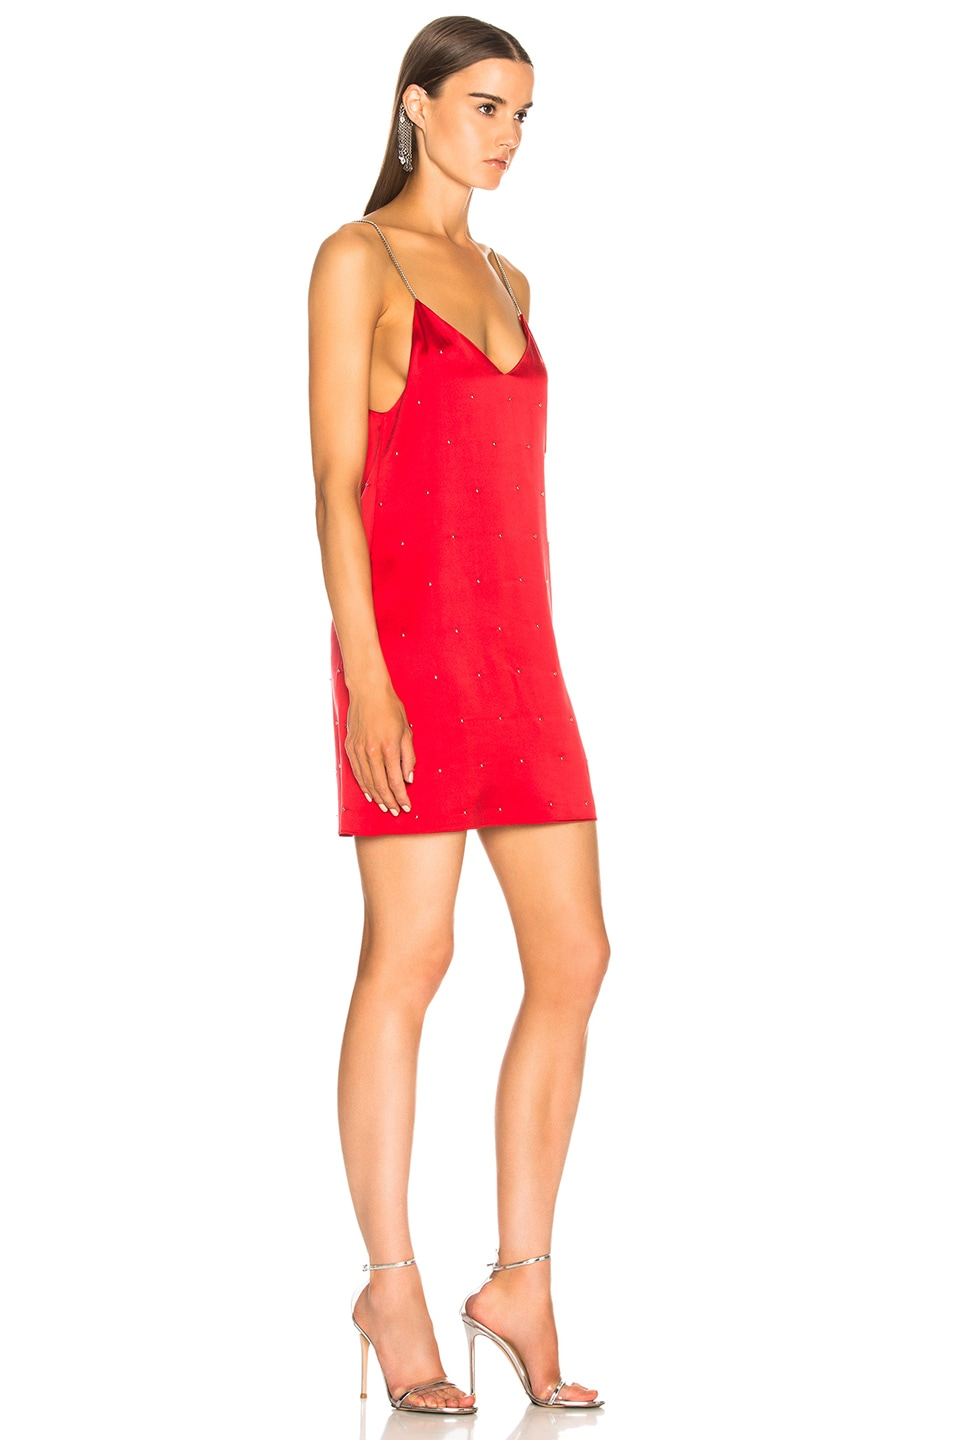 067bf2d5d3920 Image 2 of Amiri Silk Studded Slip Dress in Red